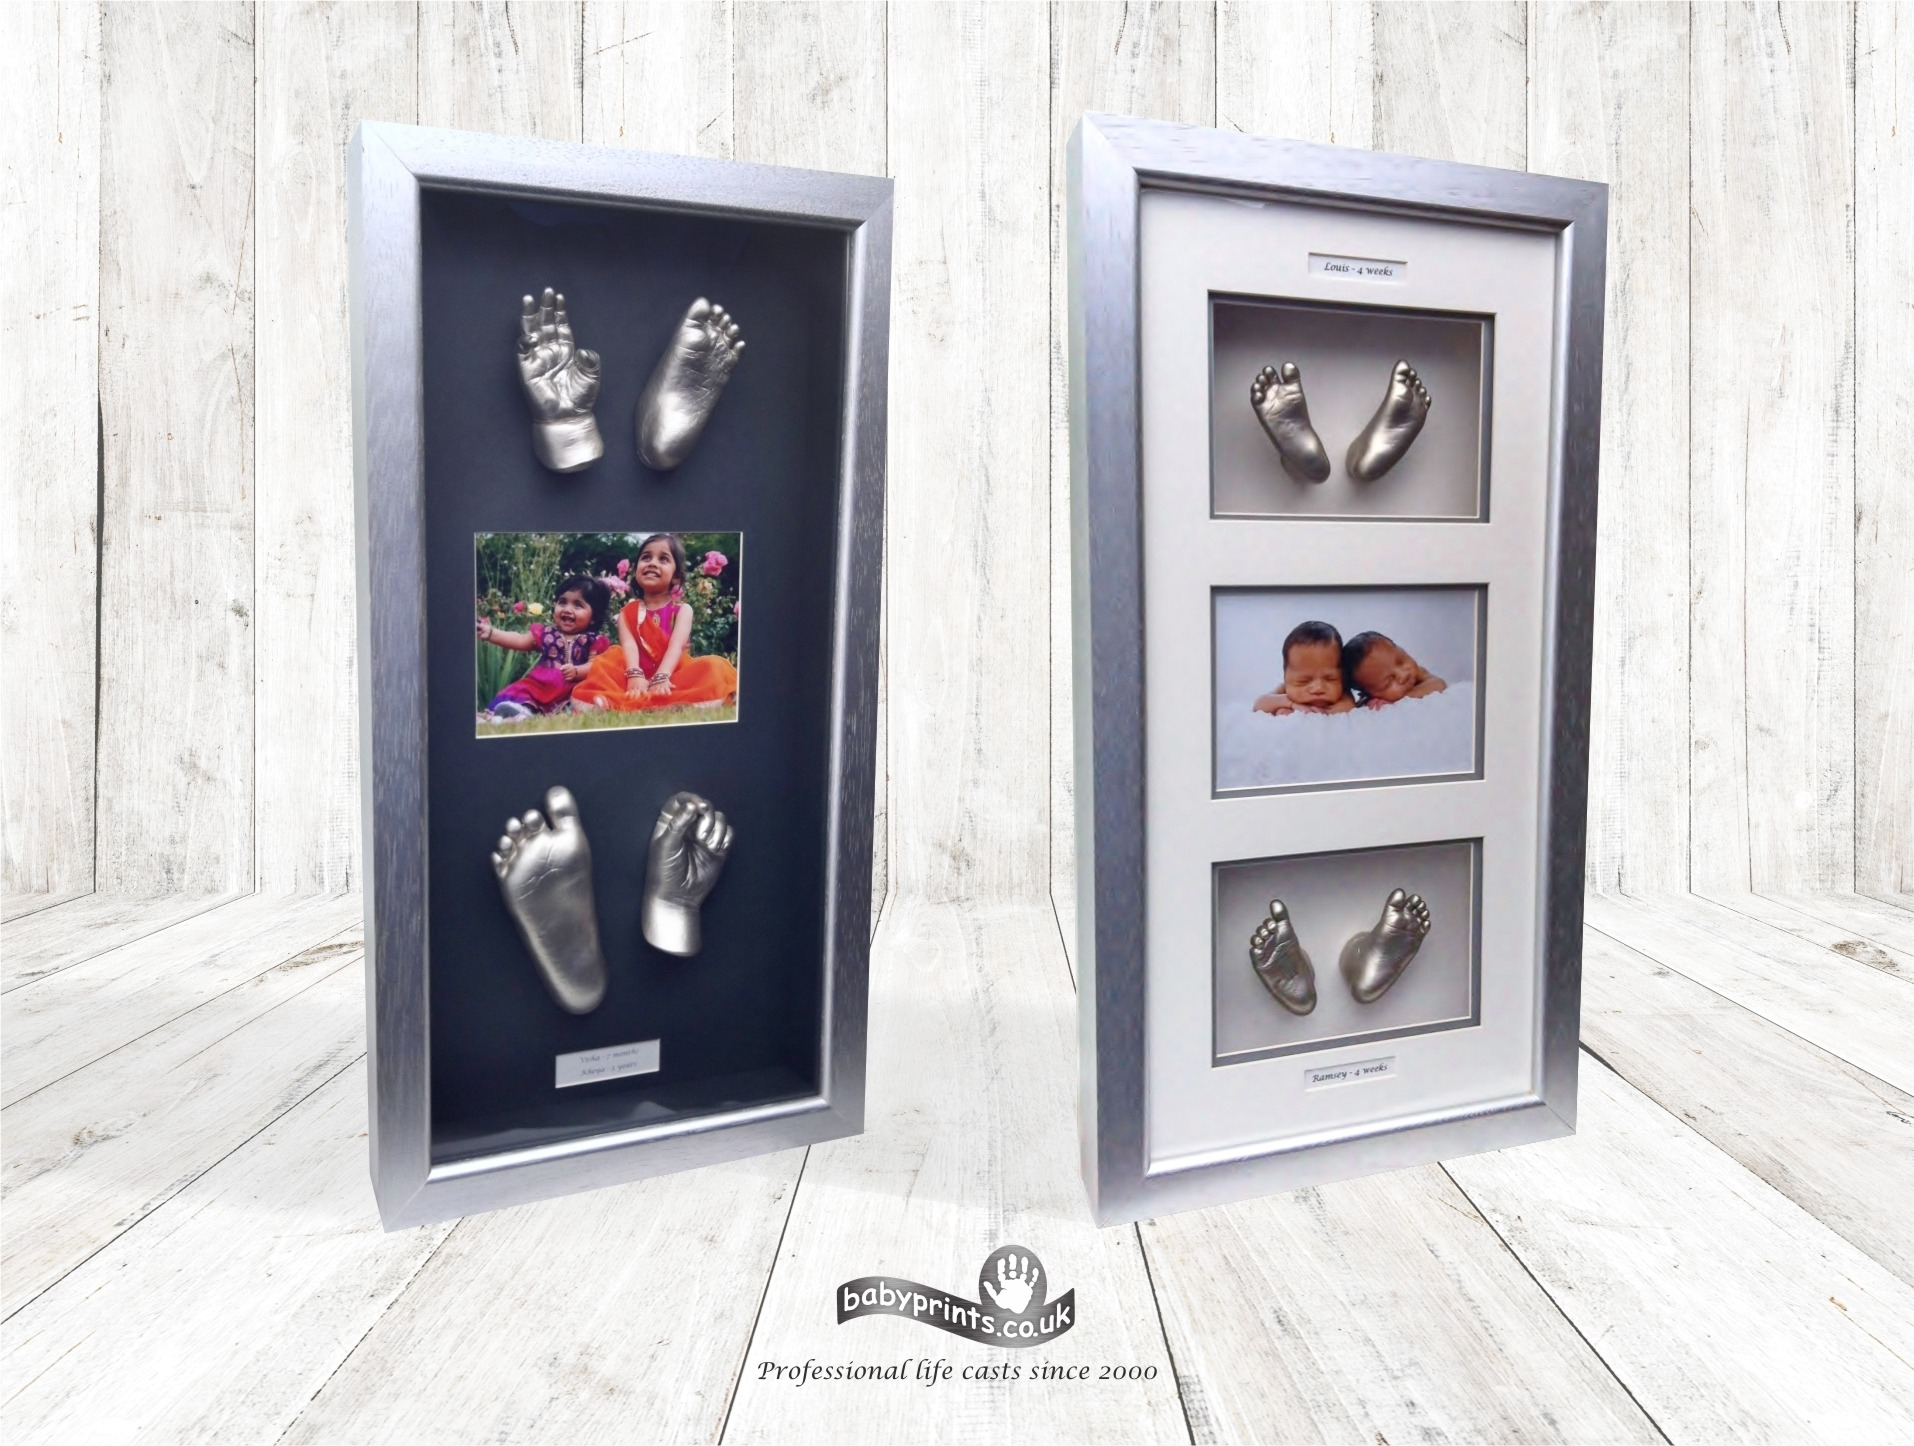 Sibling castings with photo in portrait frame